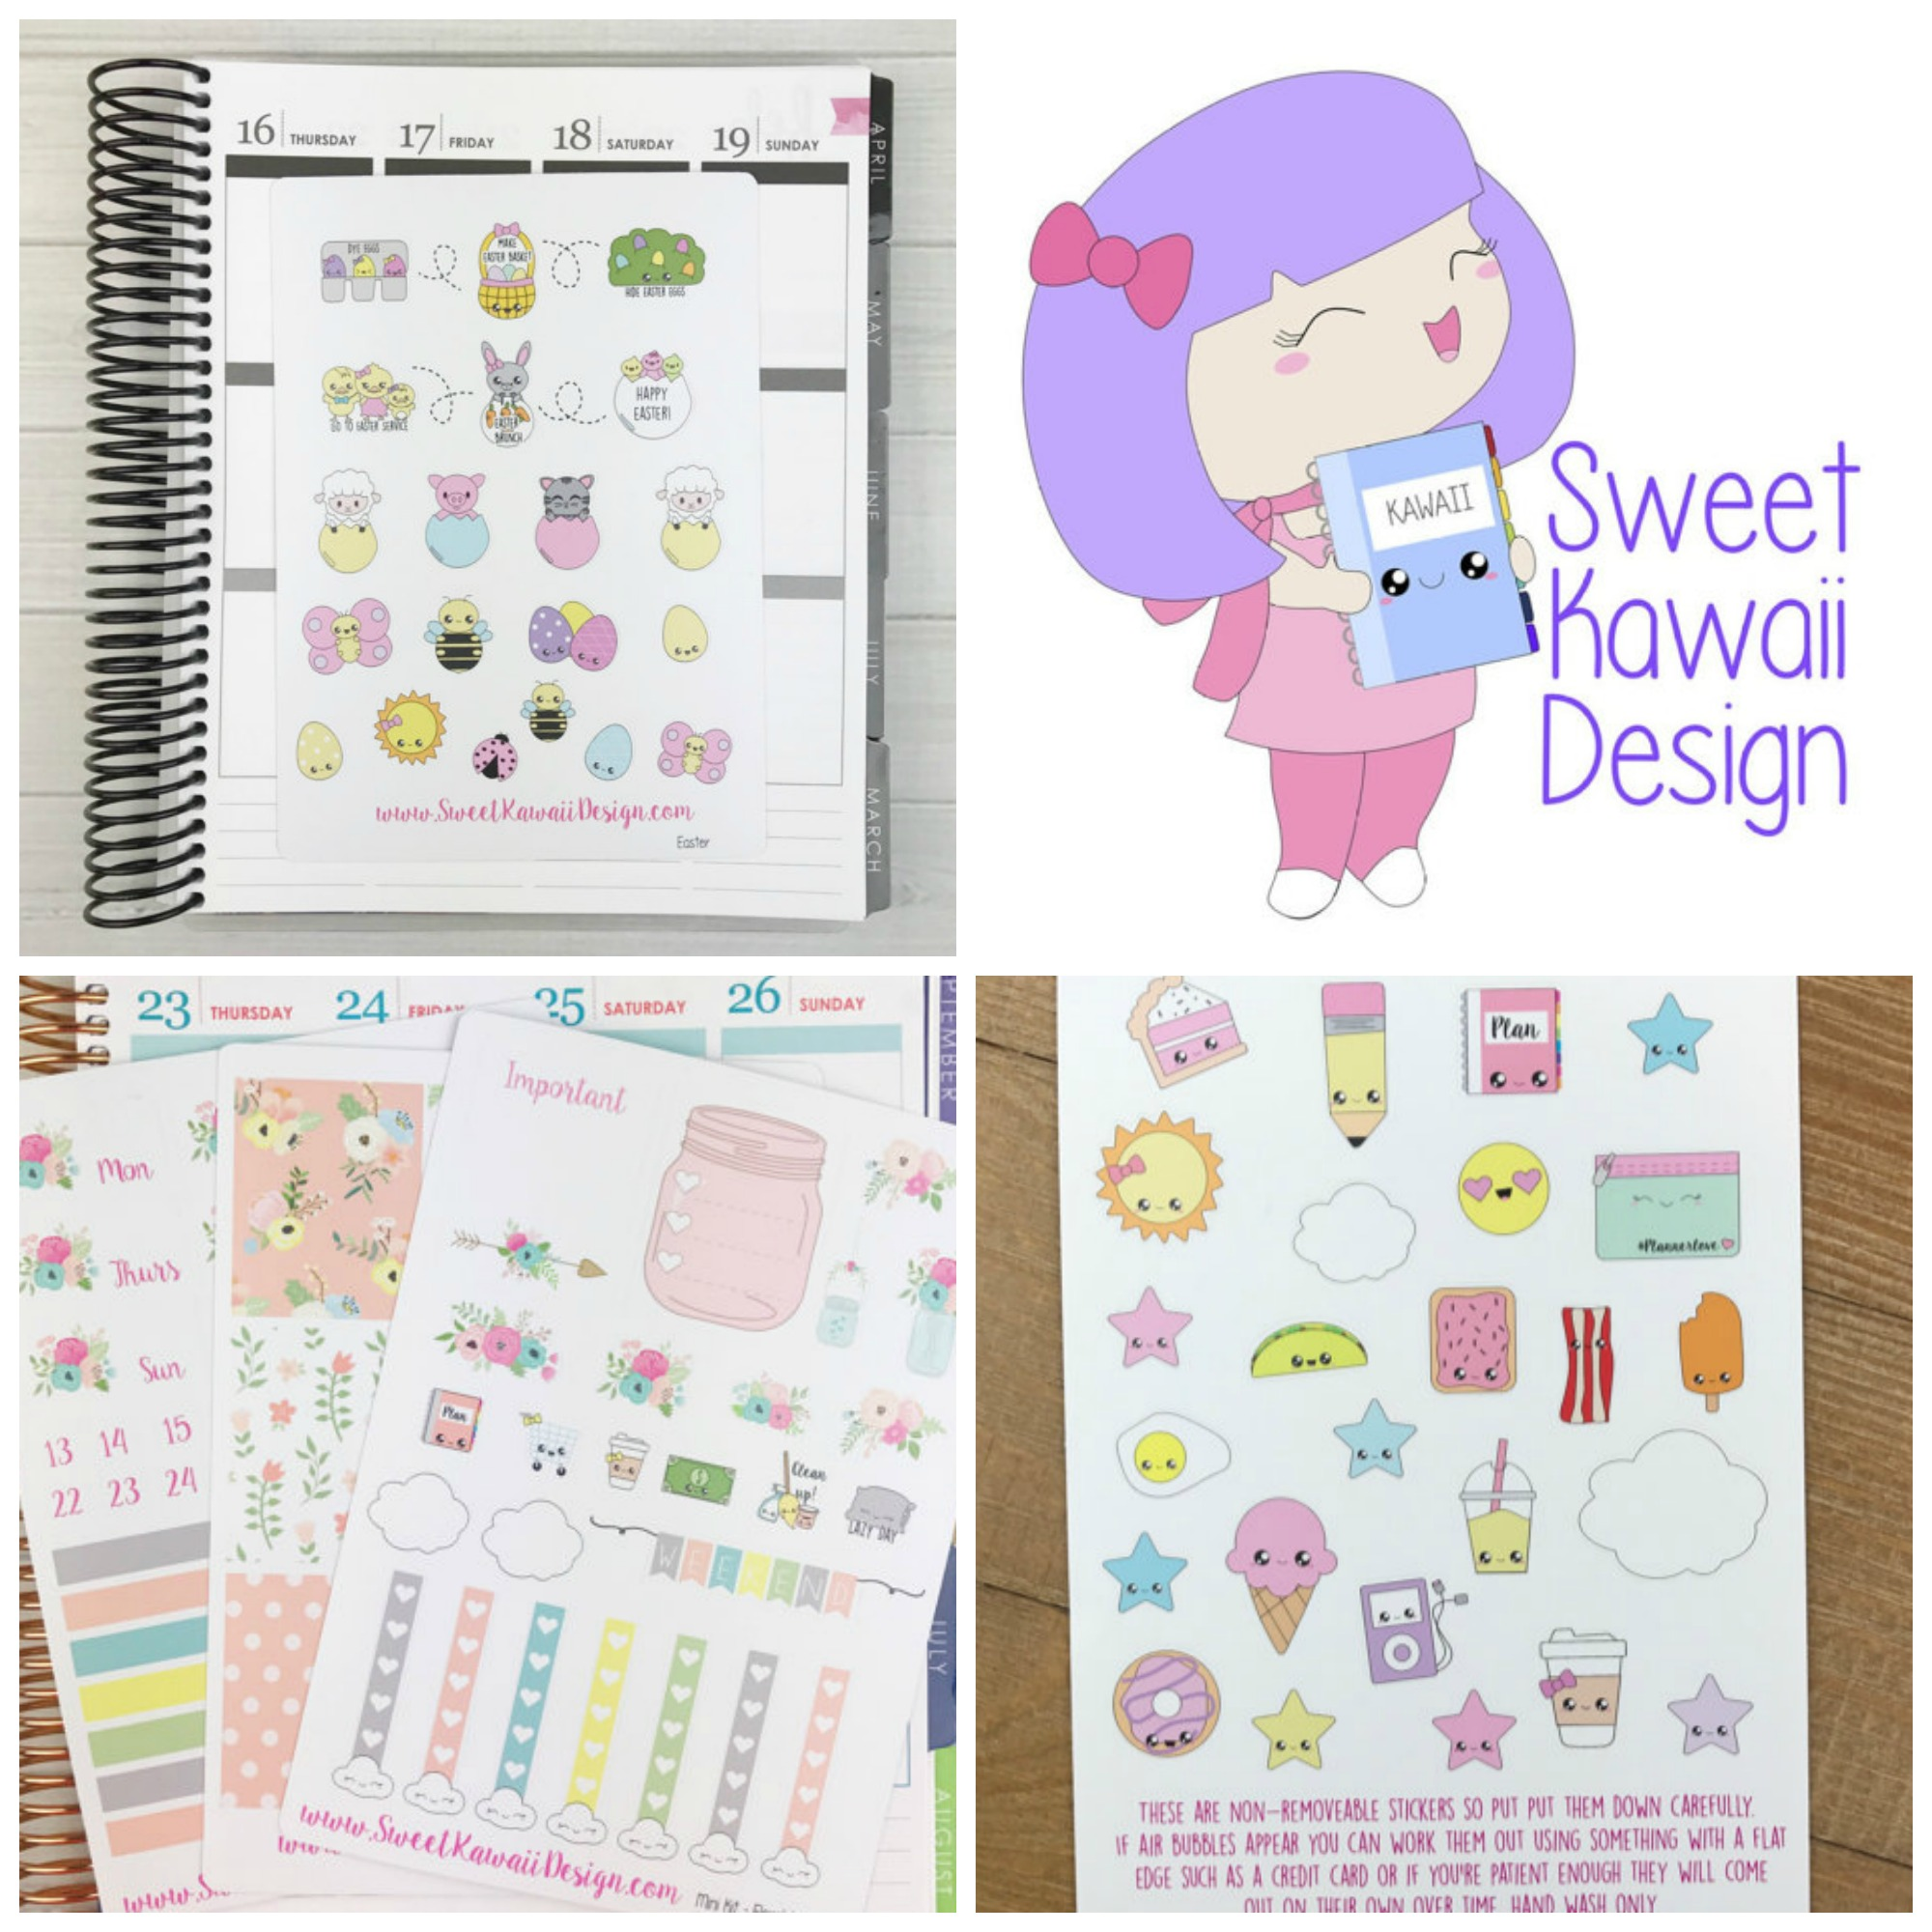 855a71828194f 4 of My Favorite Planner Stickers from Etsy | Friedia